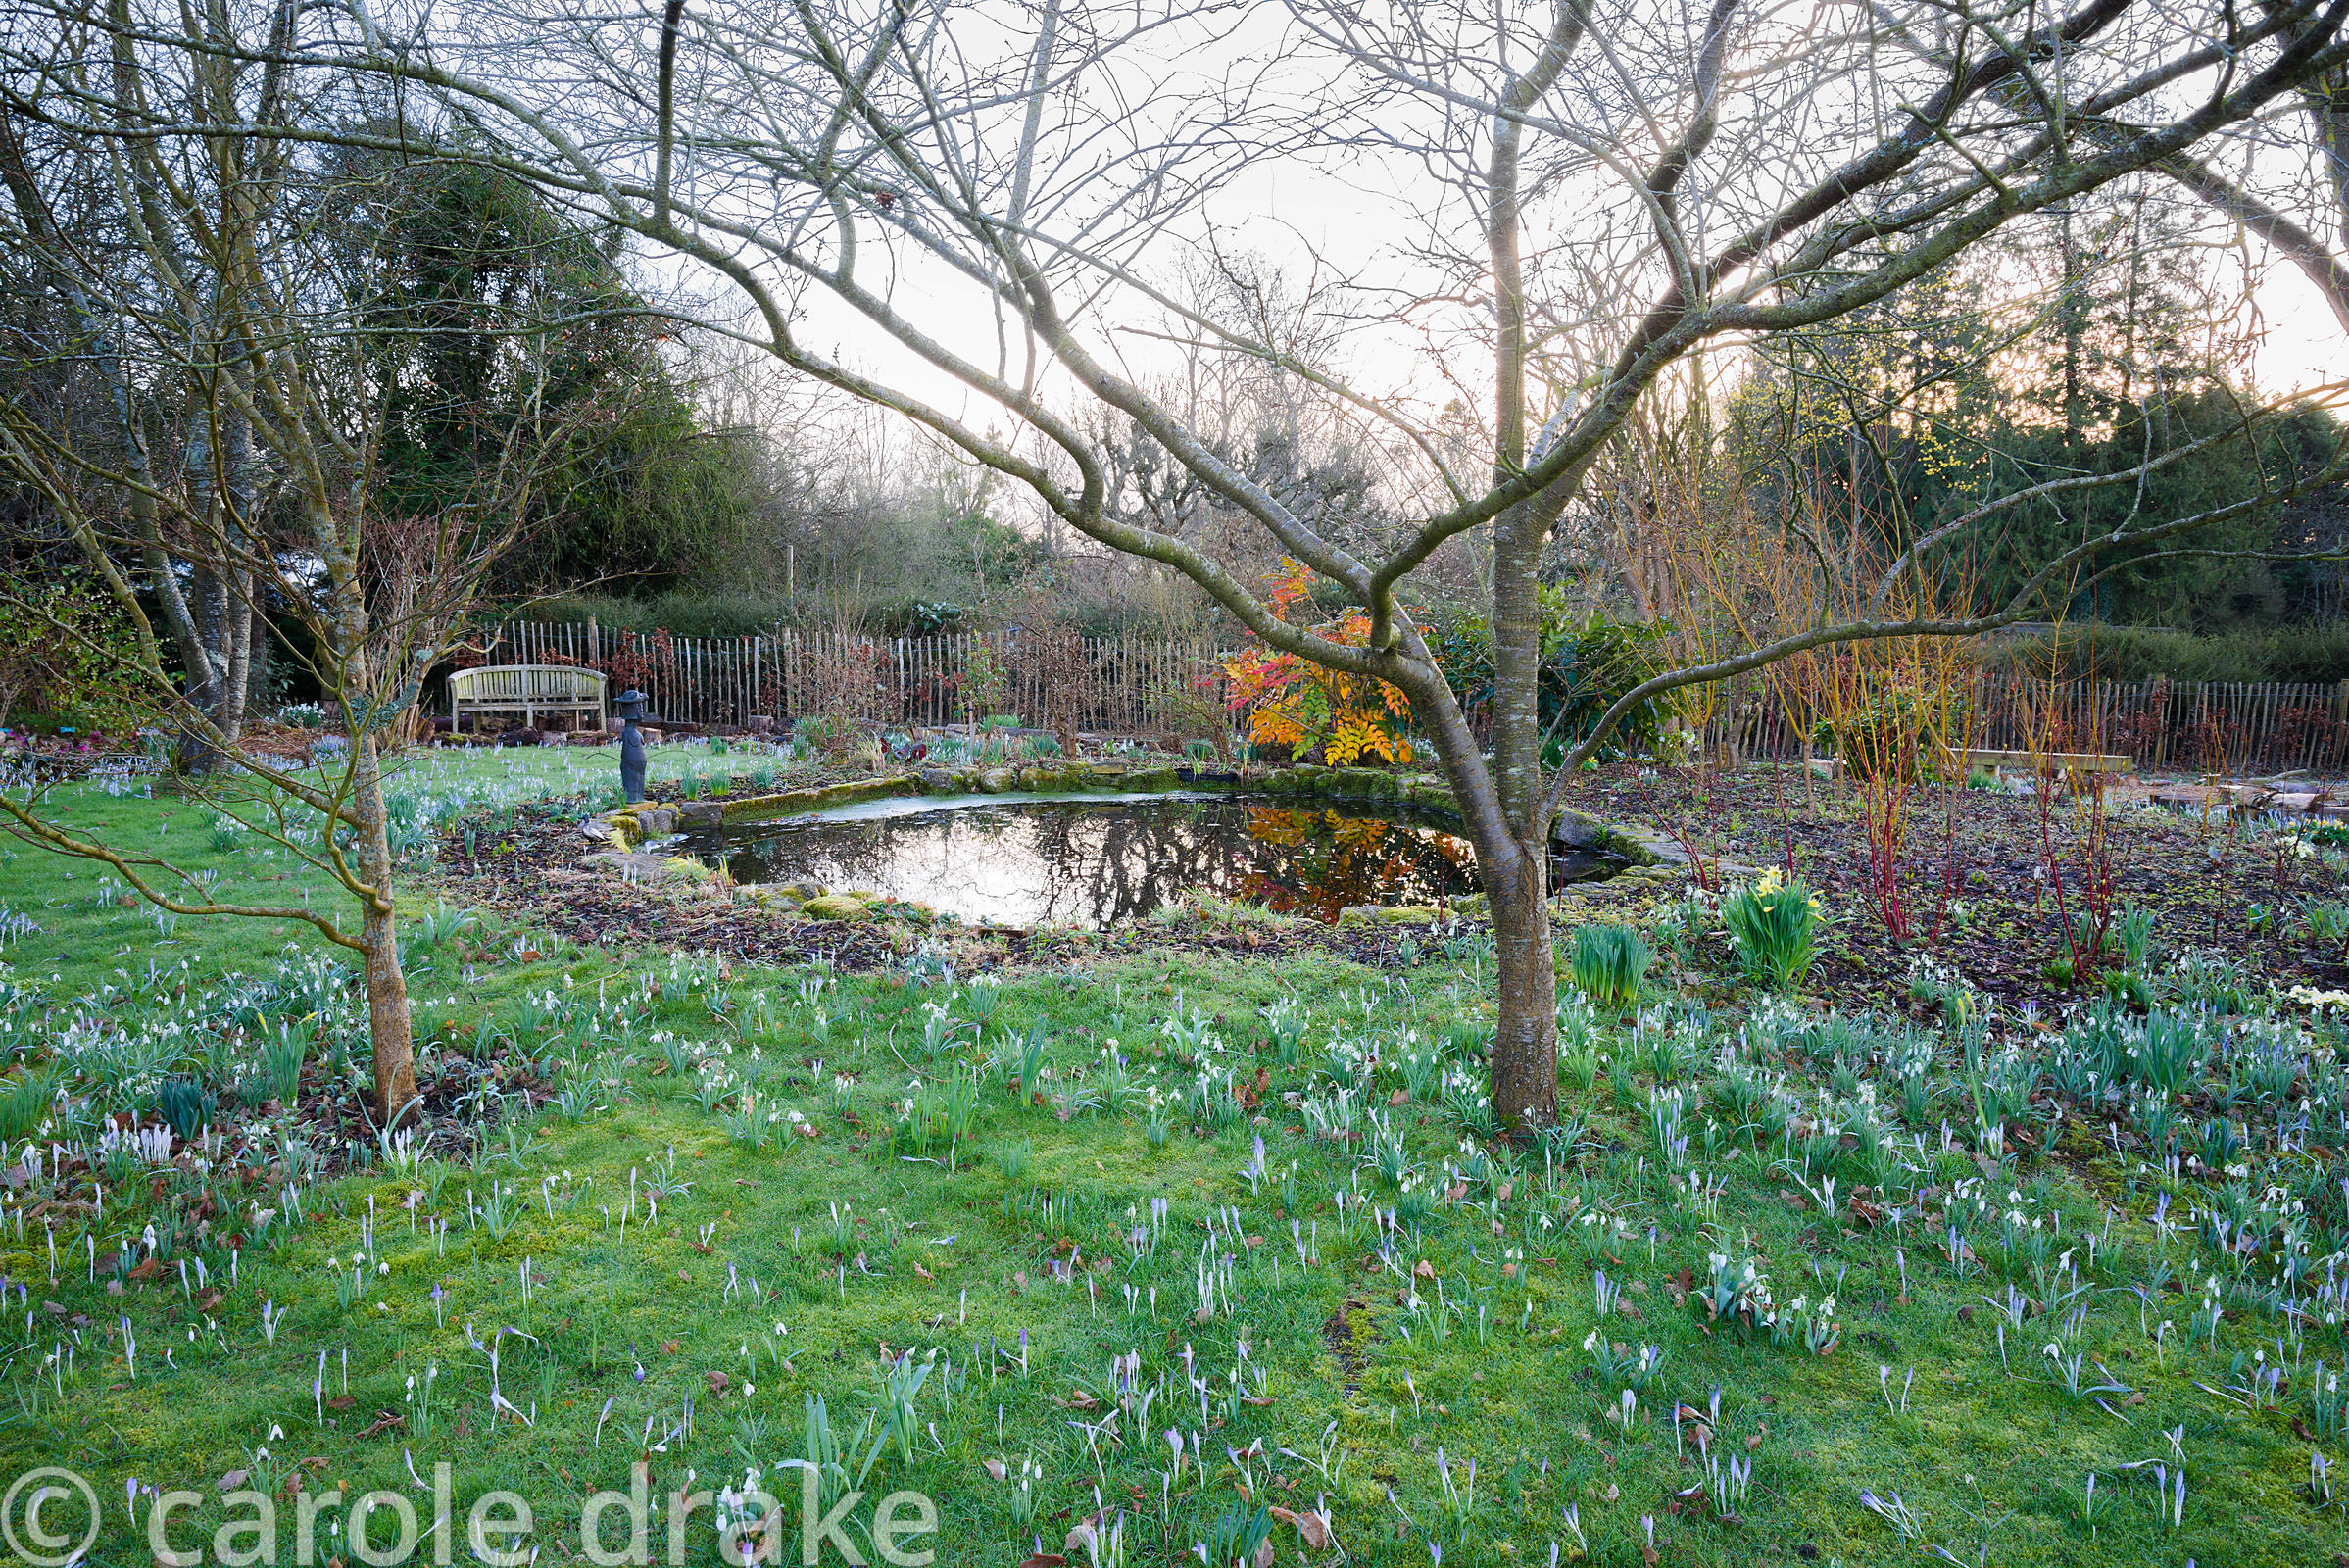 Pond edged with naturalized Crocus tommasinianus, snowdrops and shrubs including mahonia and dogwoods at The Down House, Hamp...